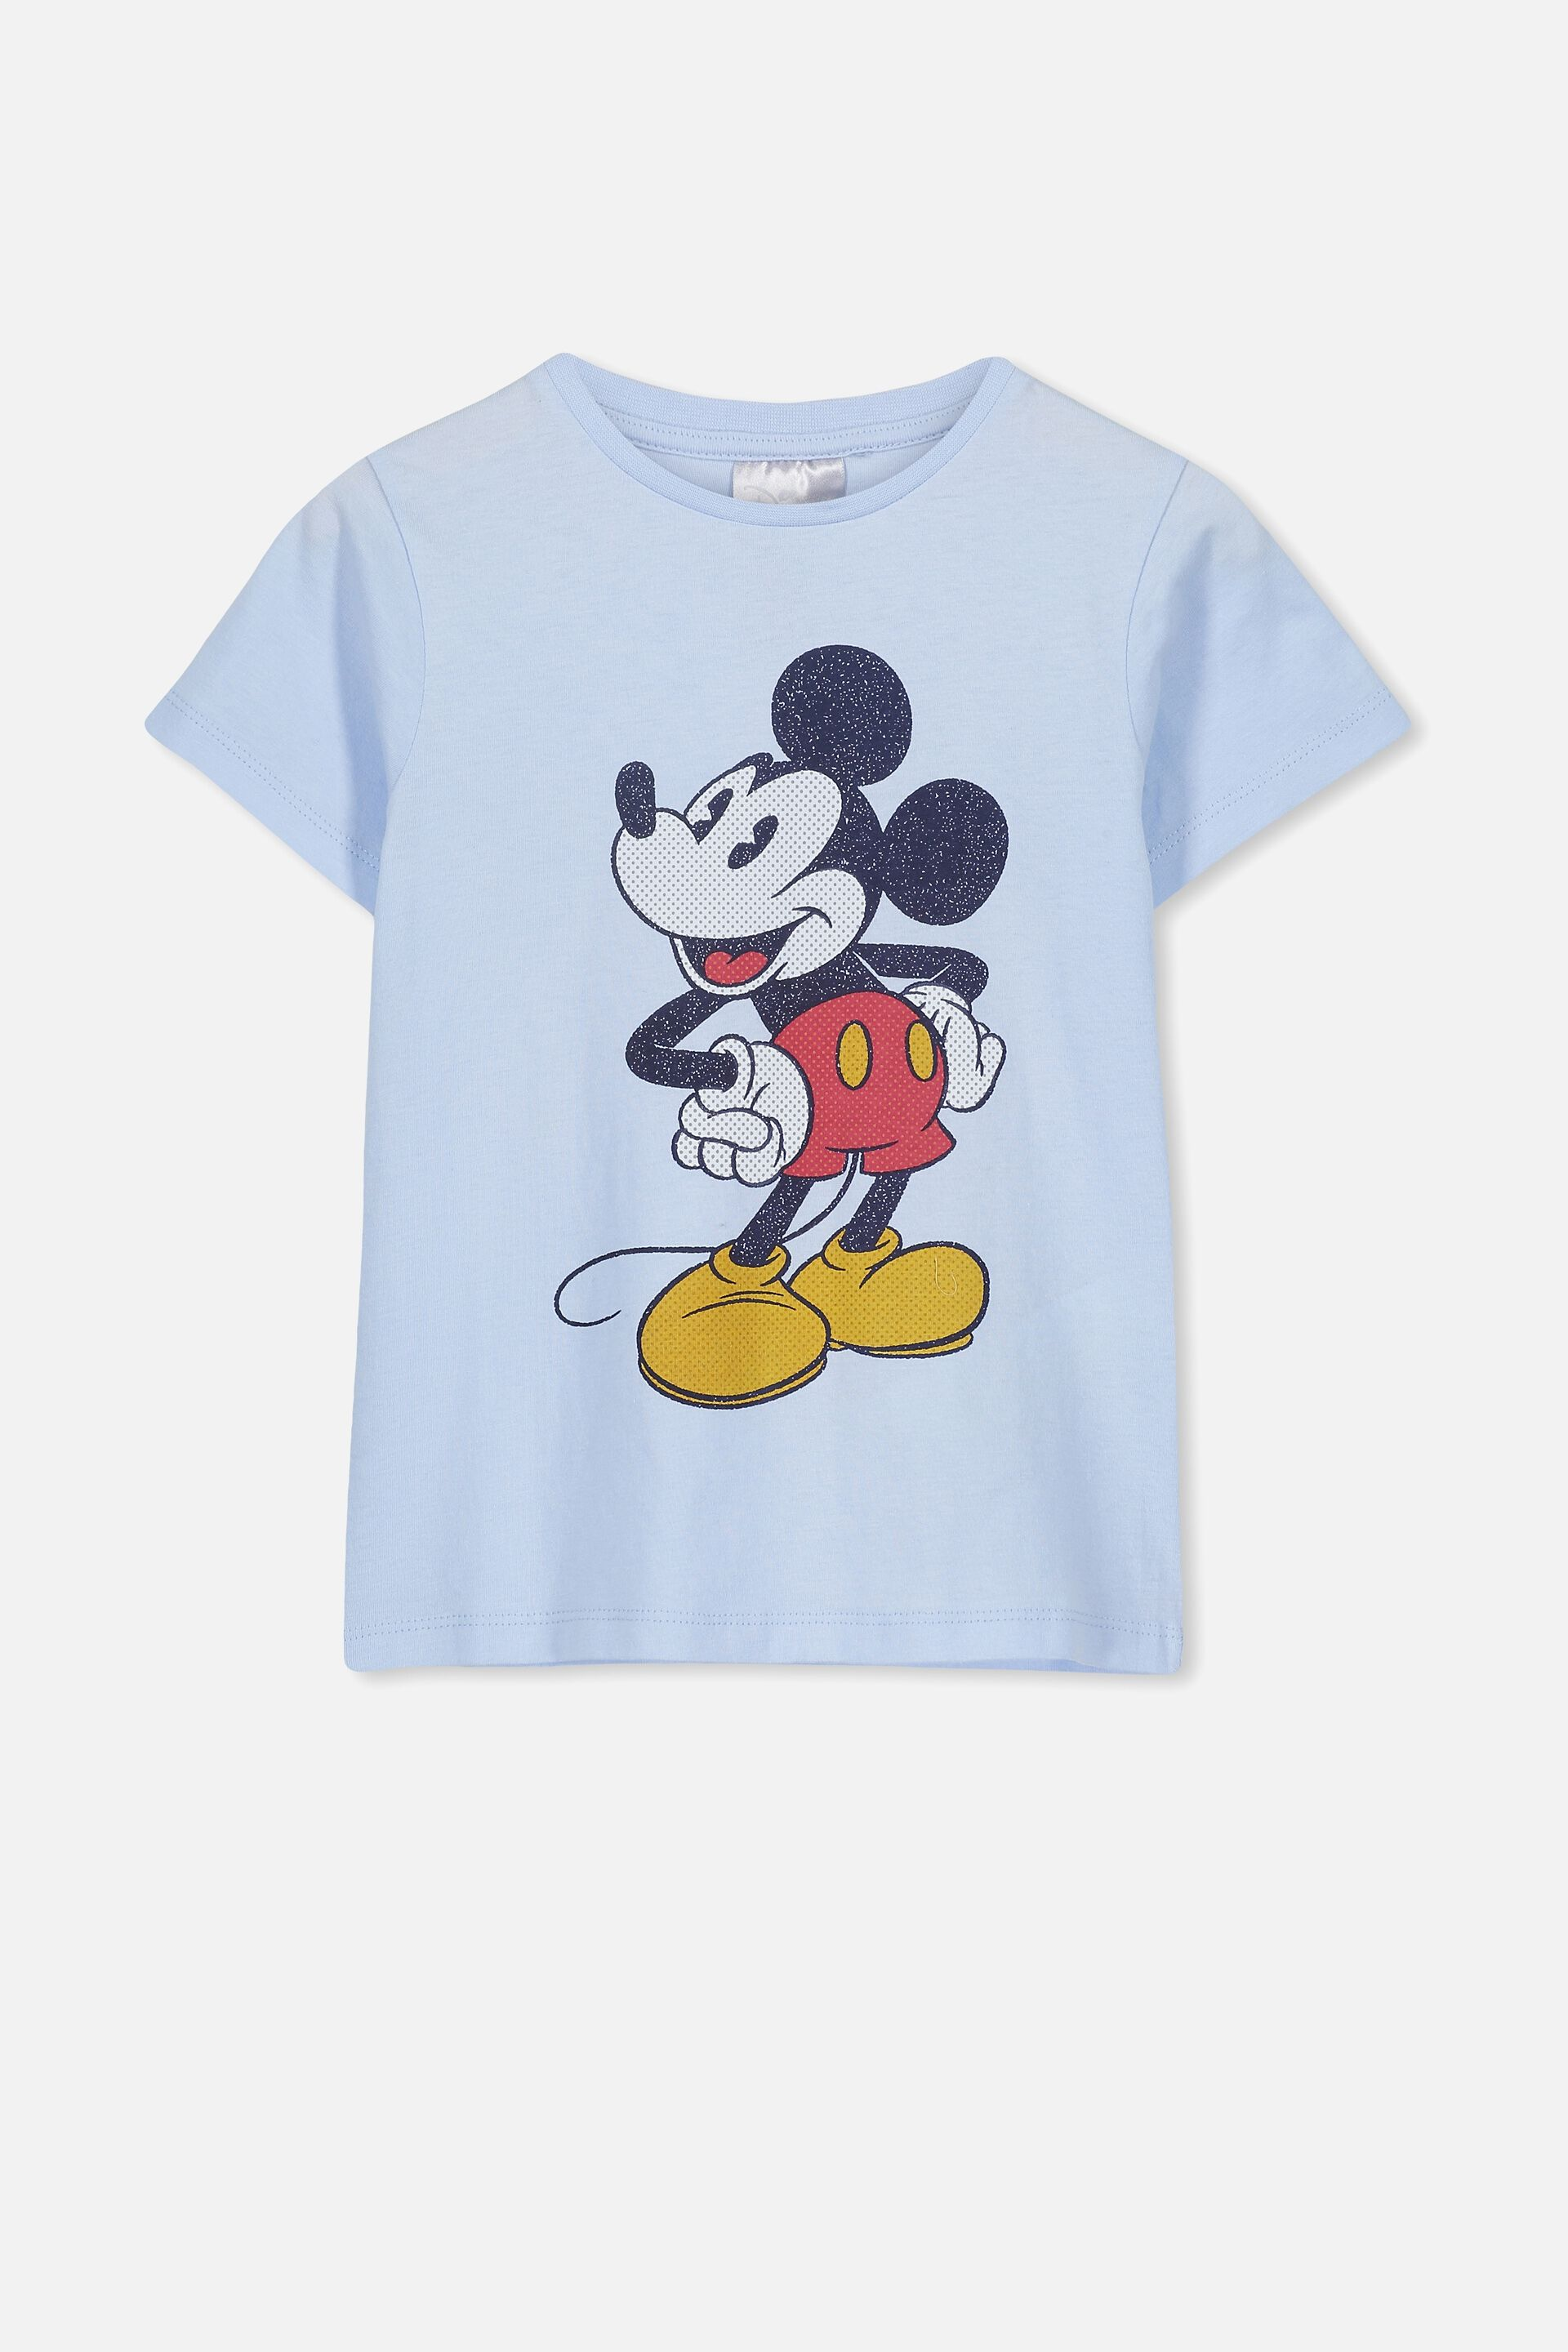 Daisy Face Light Blue Girls T-Shirt Disney